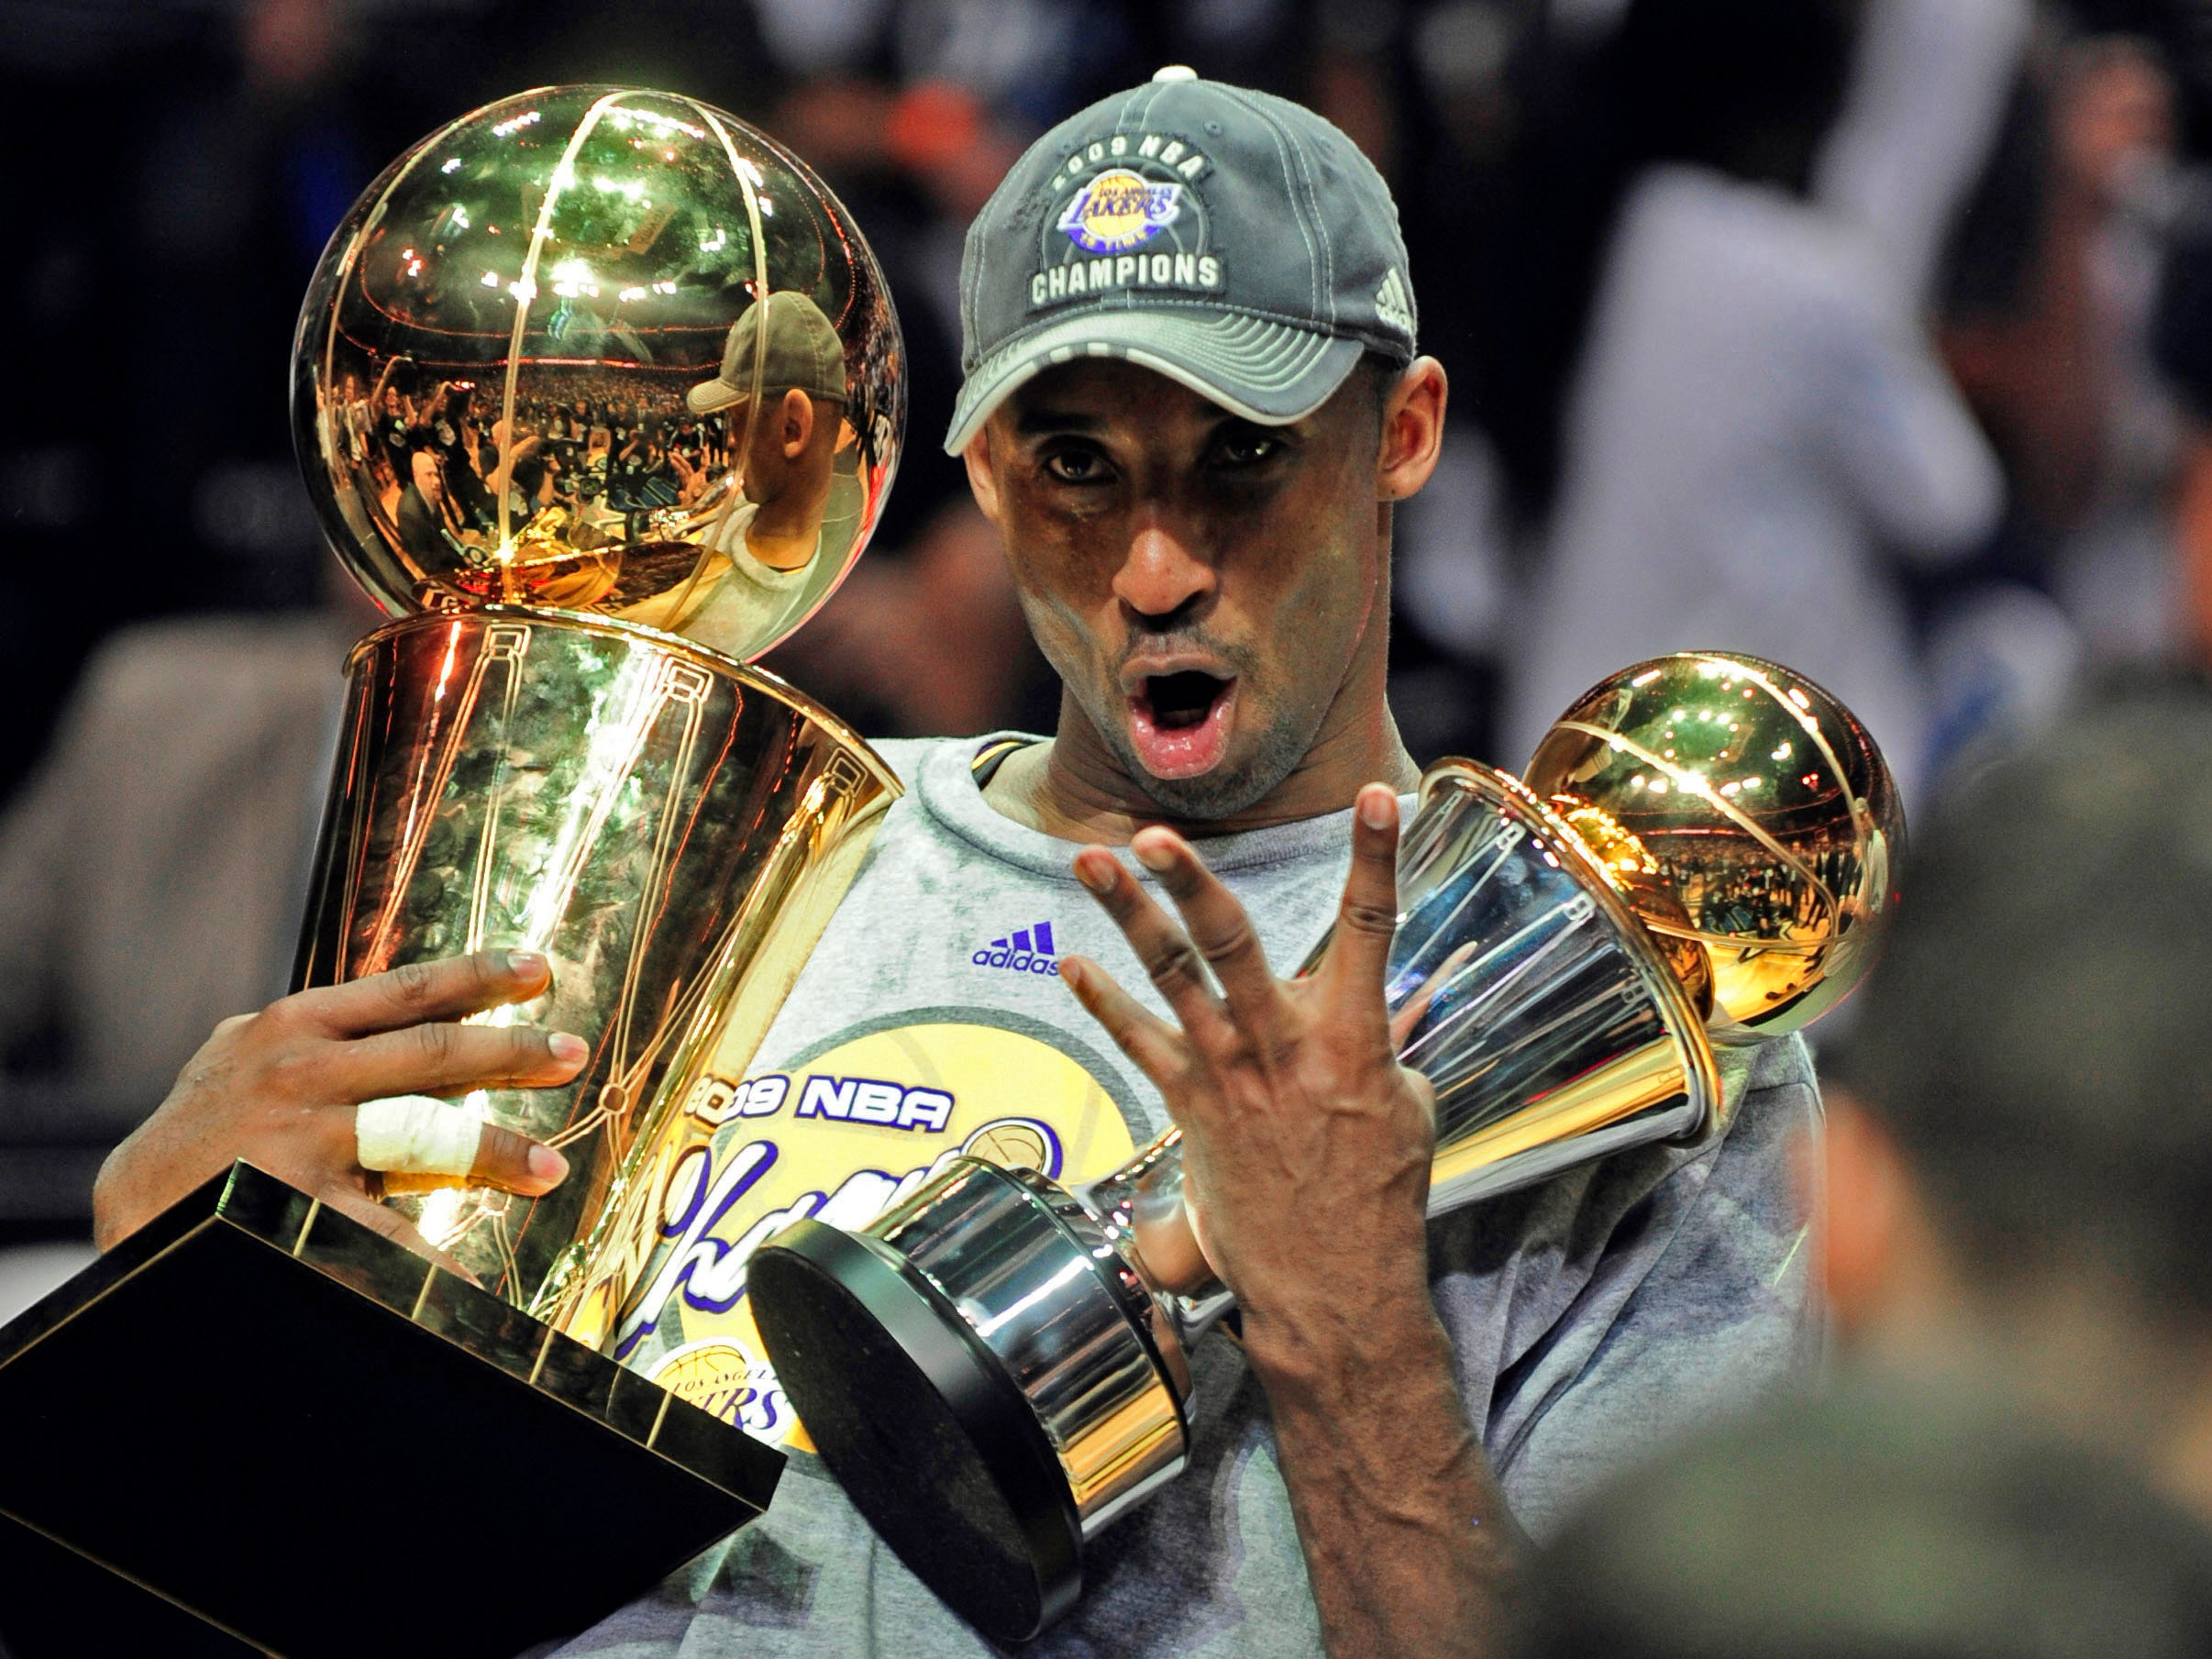 Kobe won two NBA Finals MVP awards, the first in 2009 against the Orlando Magic.